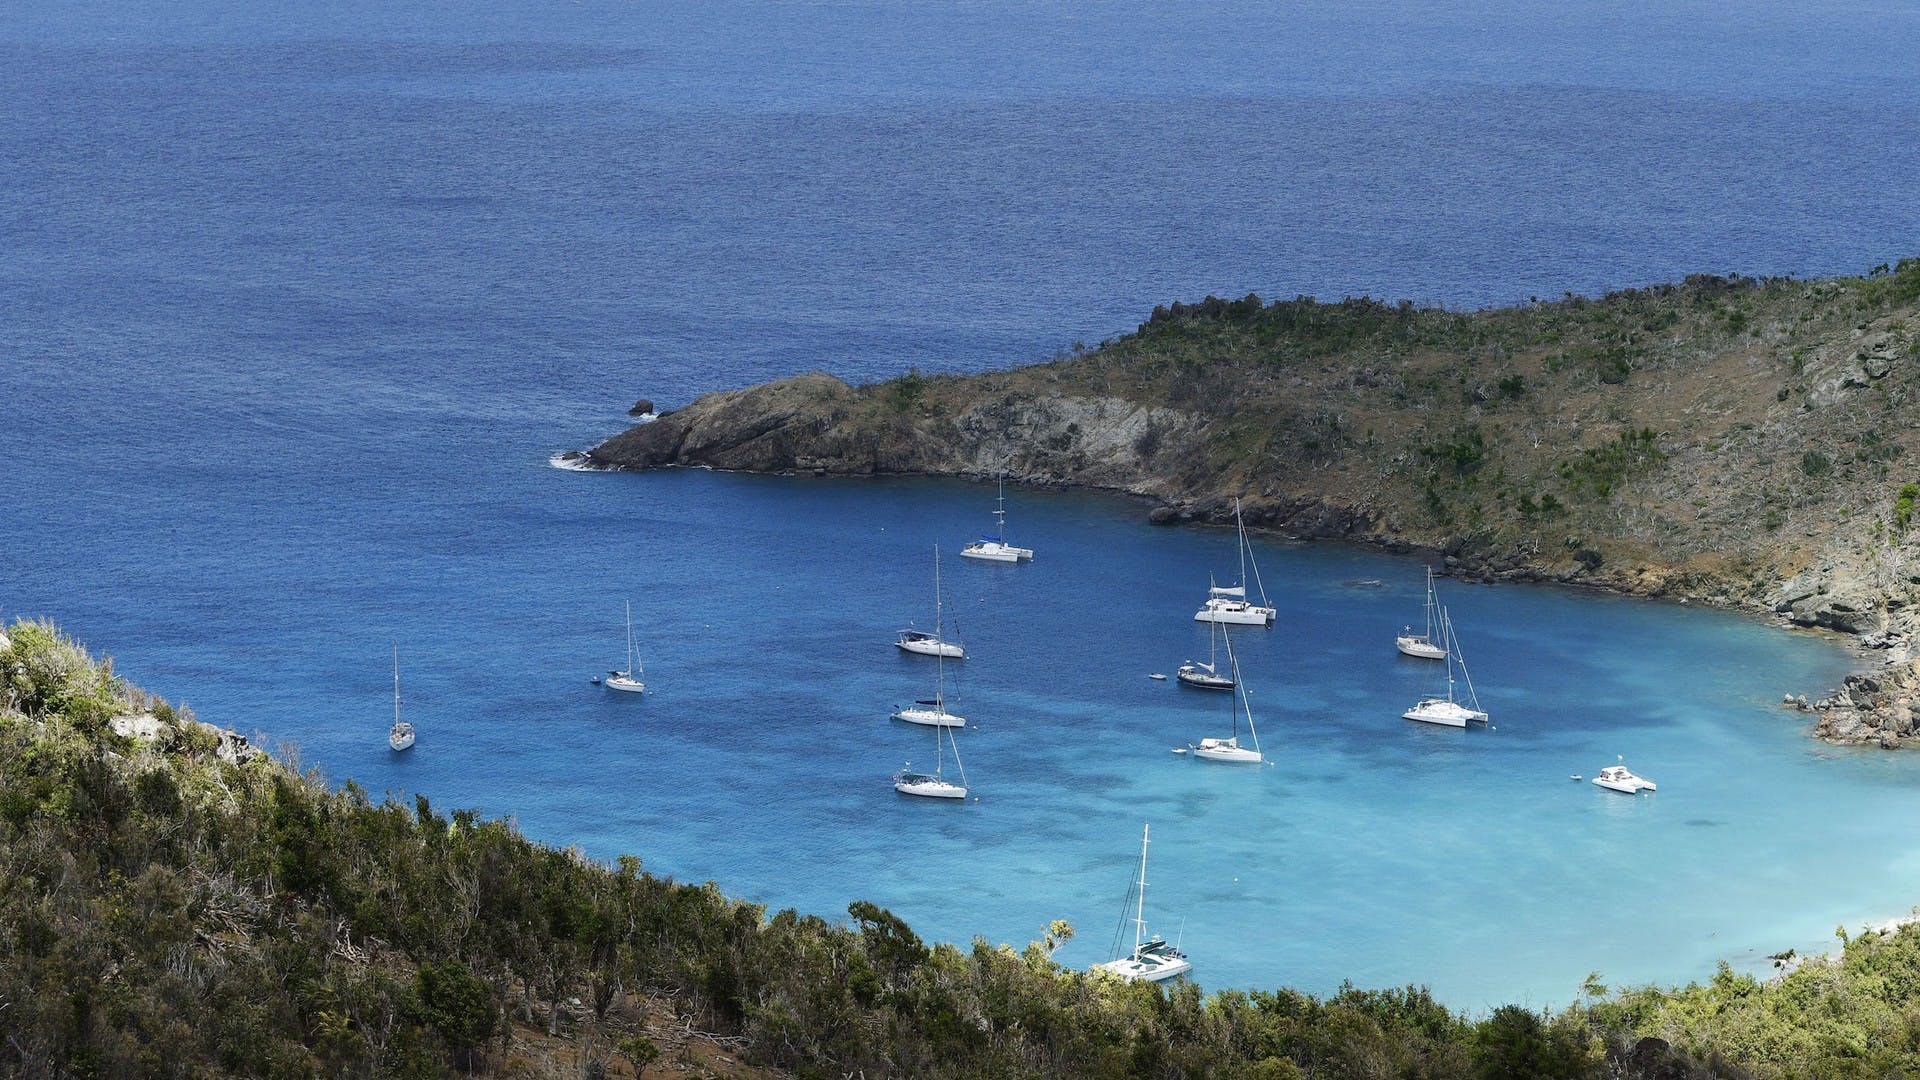 St-Barth Isle de France